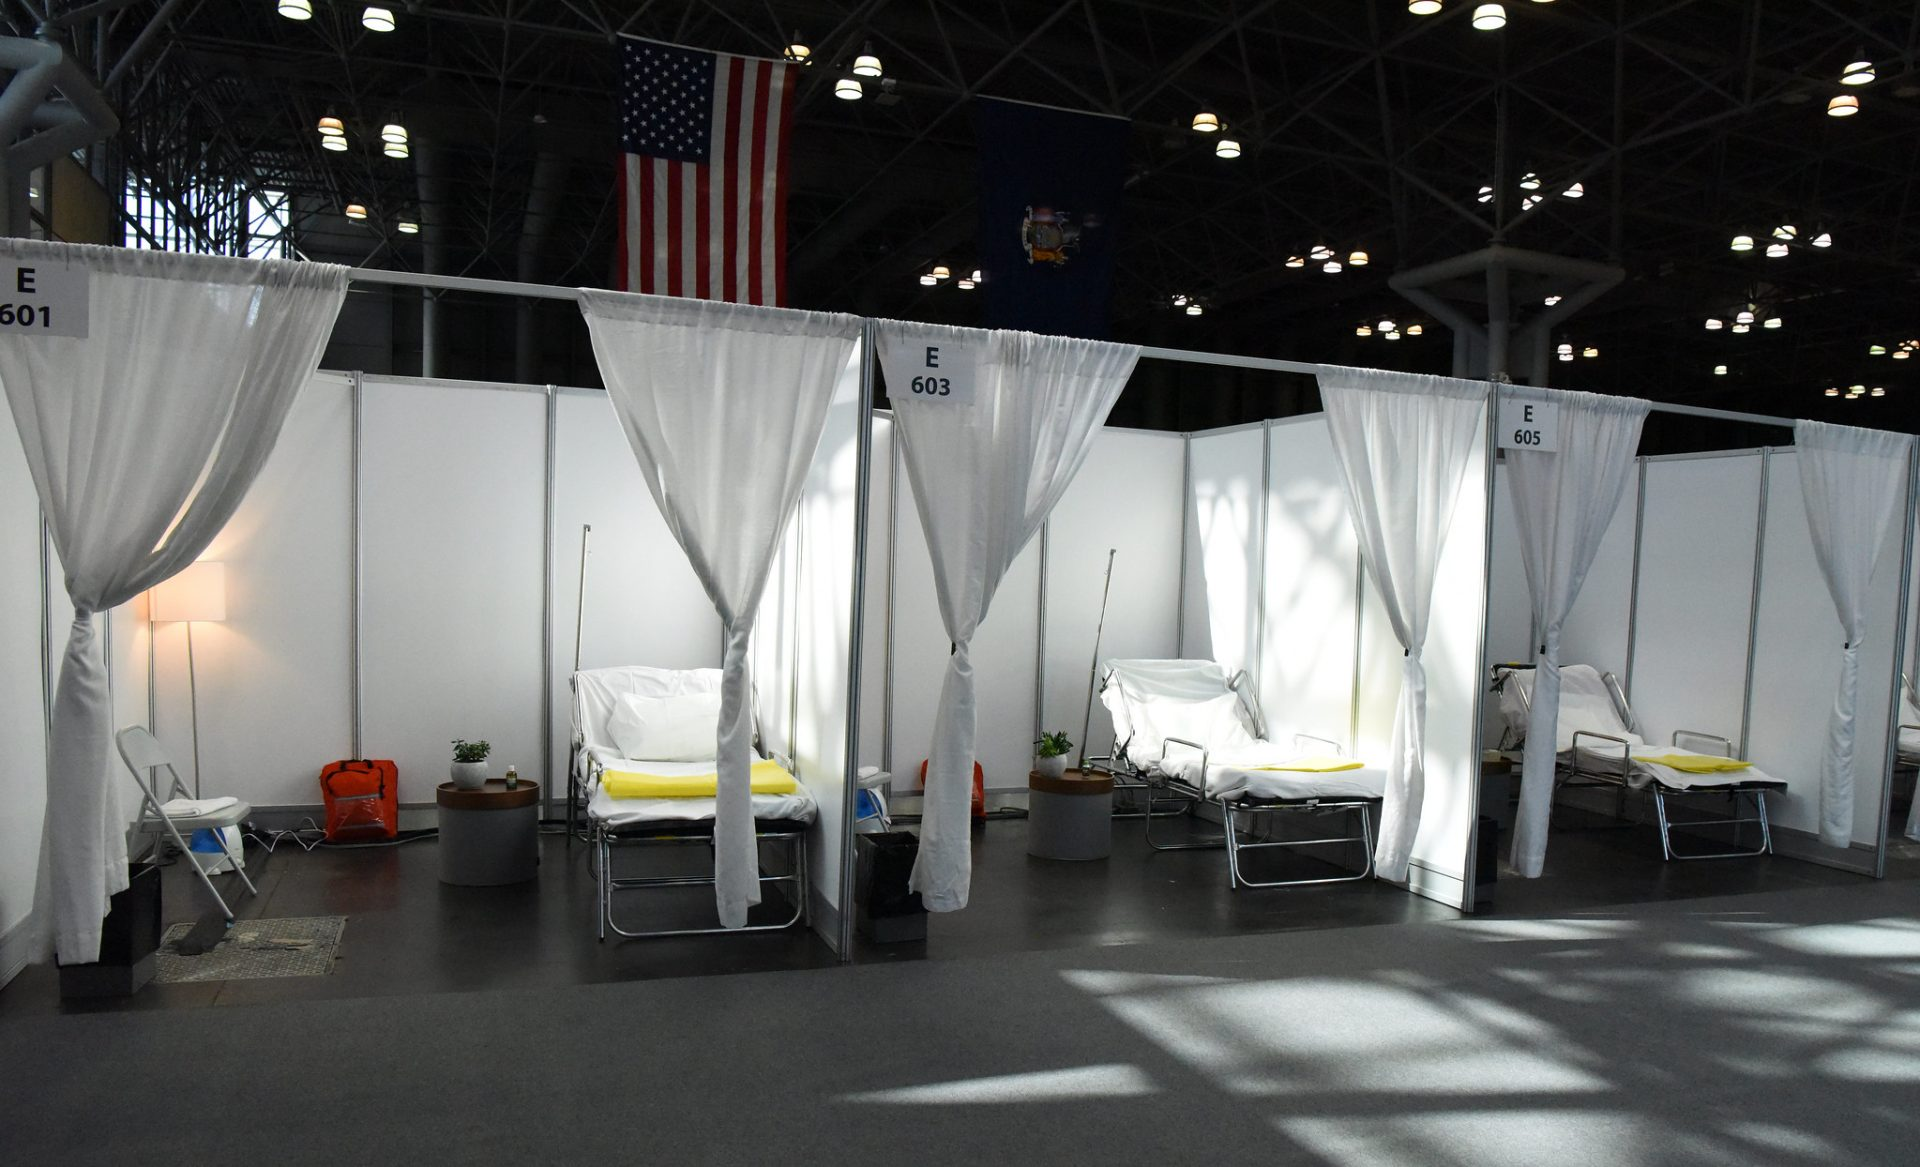 Patient care units at the Jacob K. Javits Convention Center in New York City